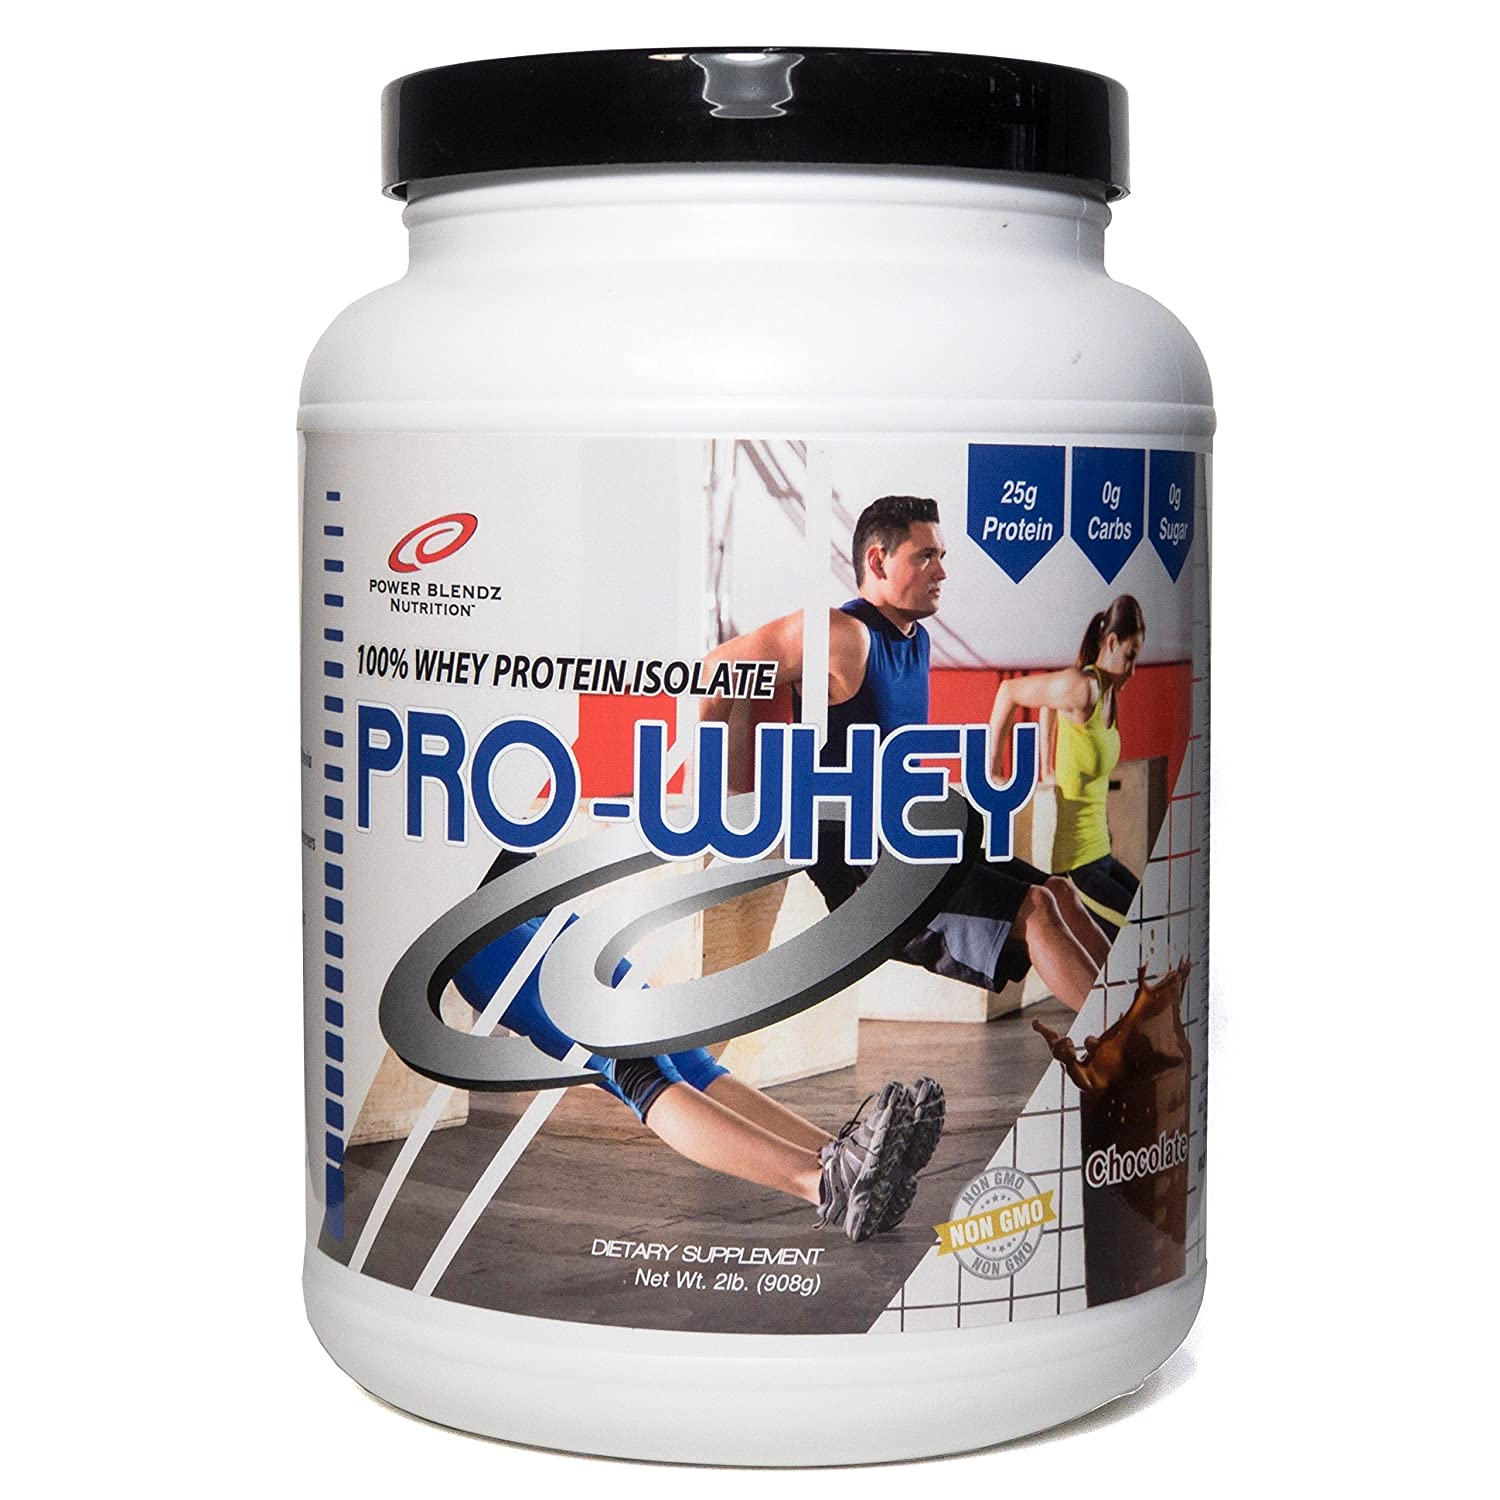 Pro Whey 100% Whey Isolate- All Natural (Chocolate)